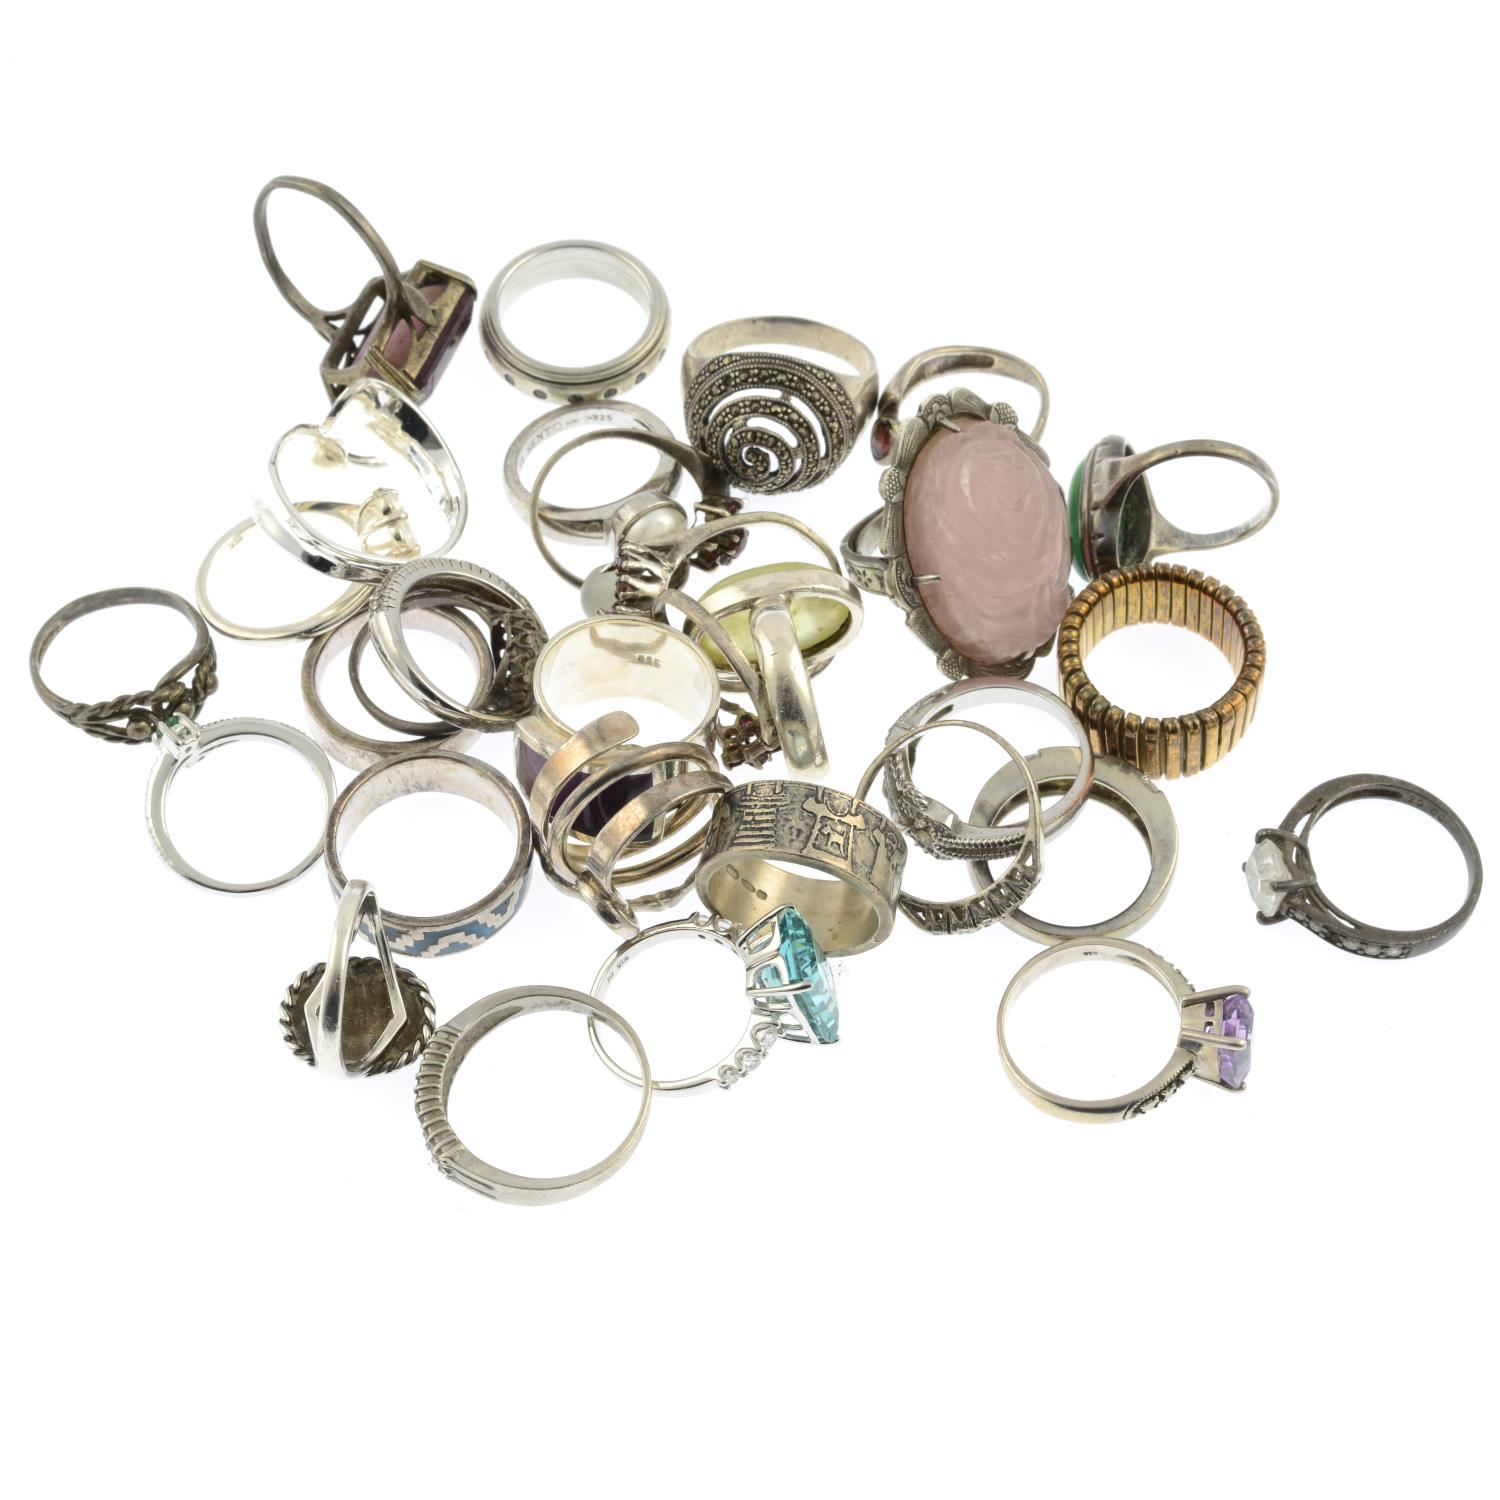 A selection of mainly gem-set rings, to include a carved rose quartz ring. - Image 2 of 2